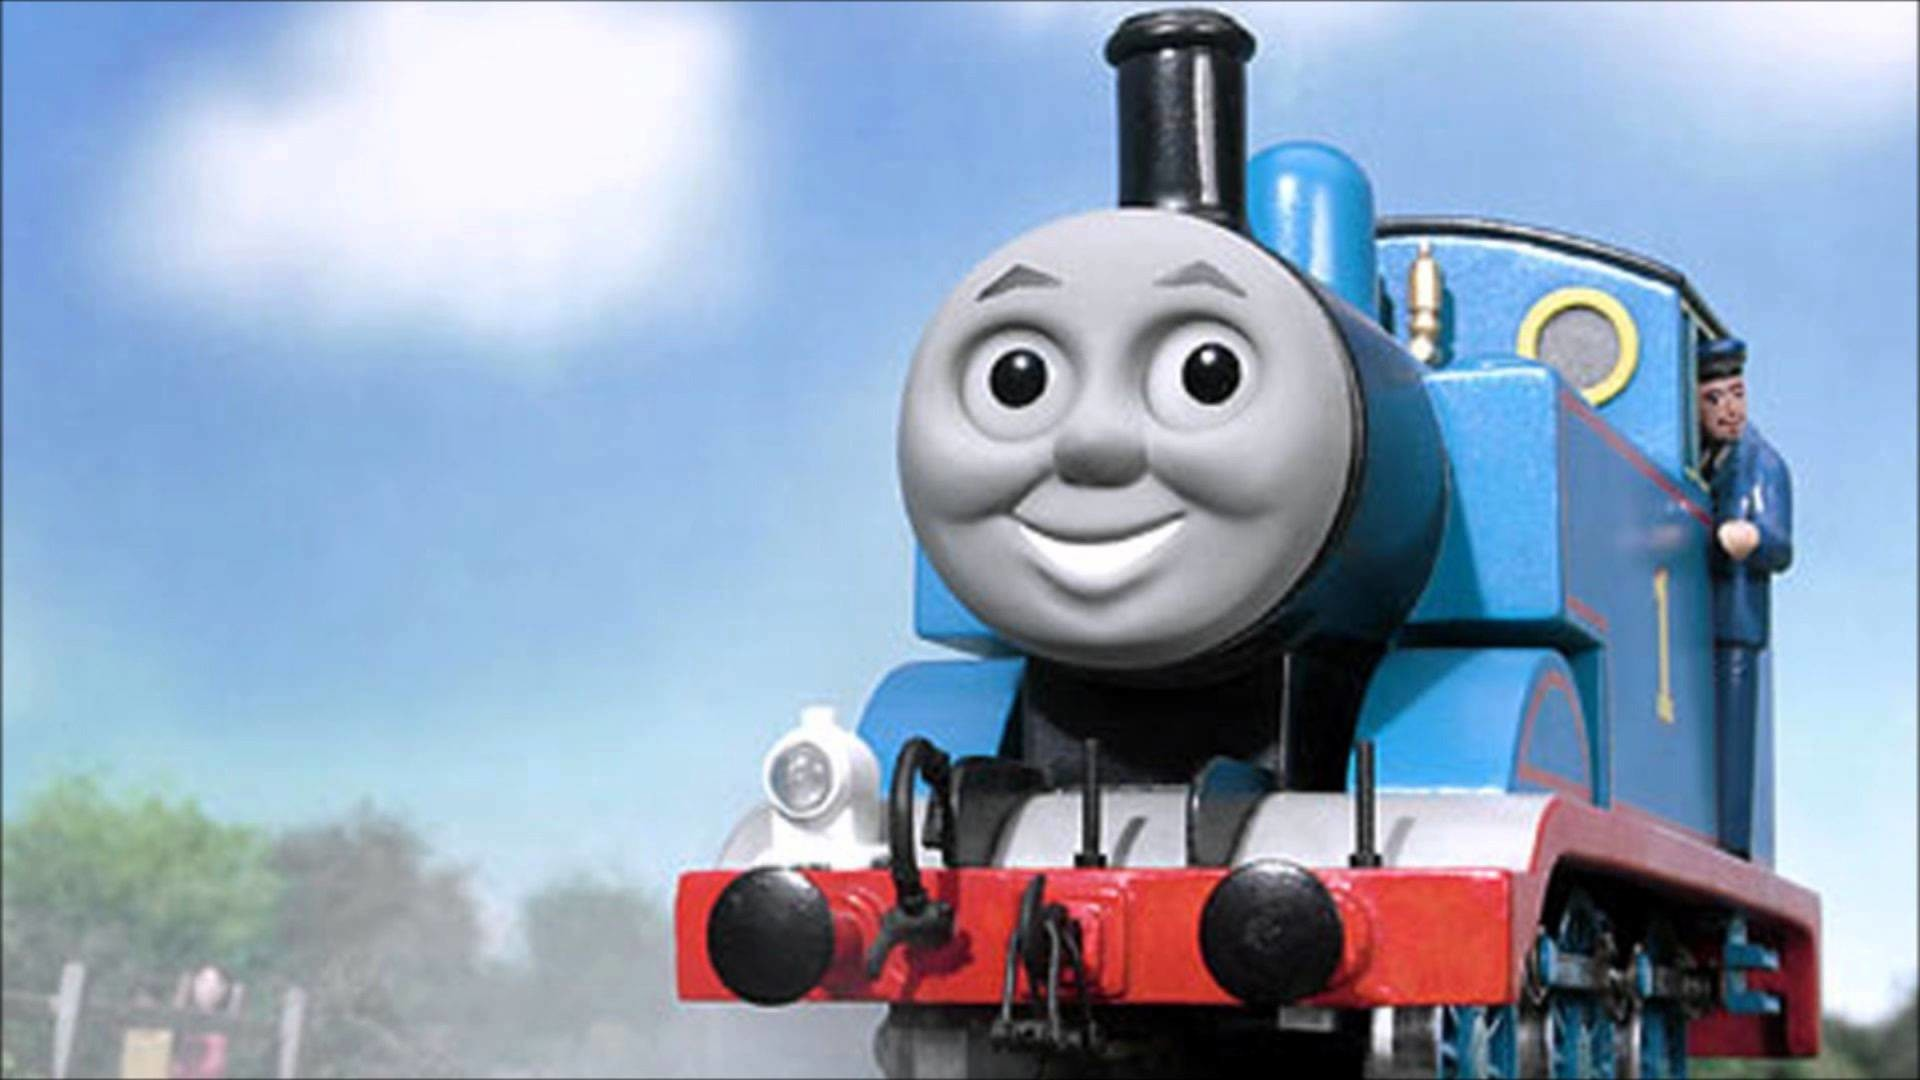 1920x1080 Thomas And Friends Screen Hd For Desktop #8173 Wallpaper .